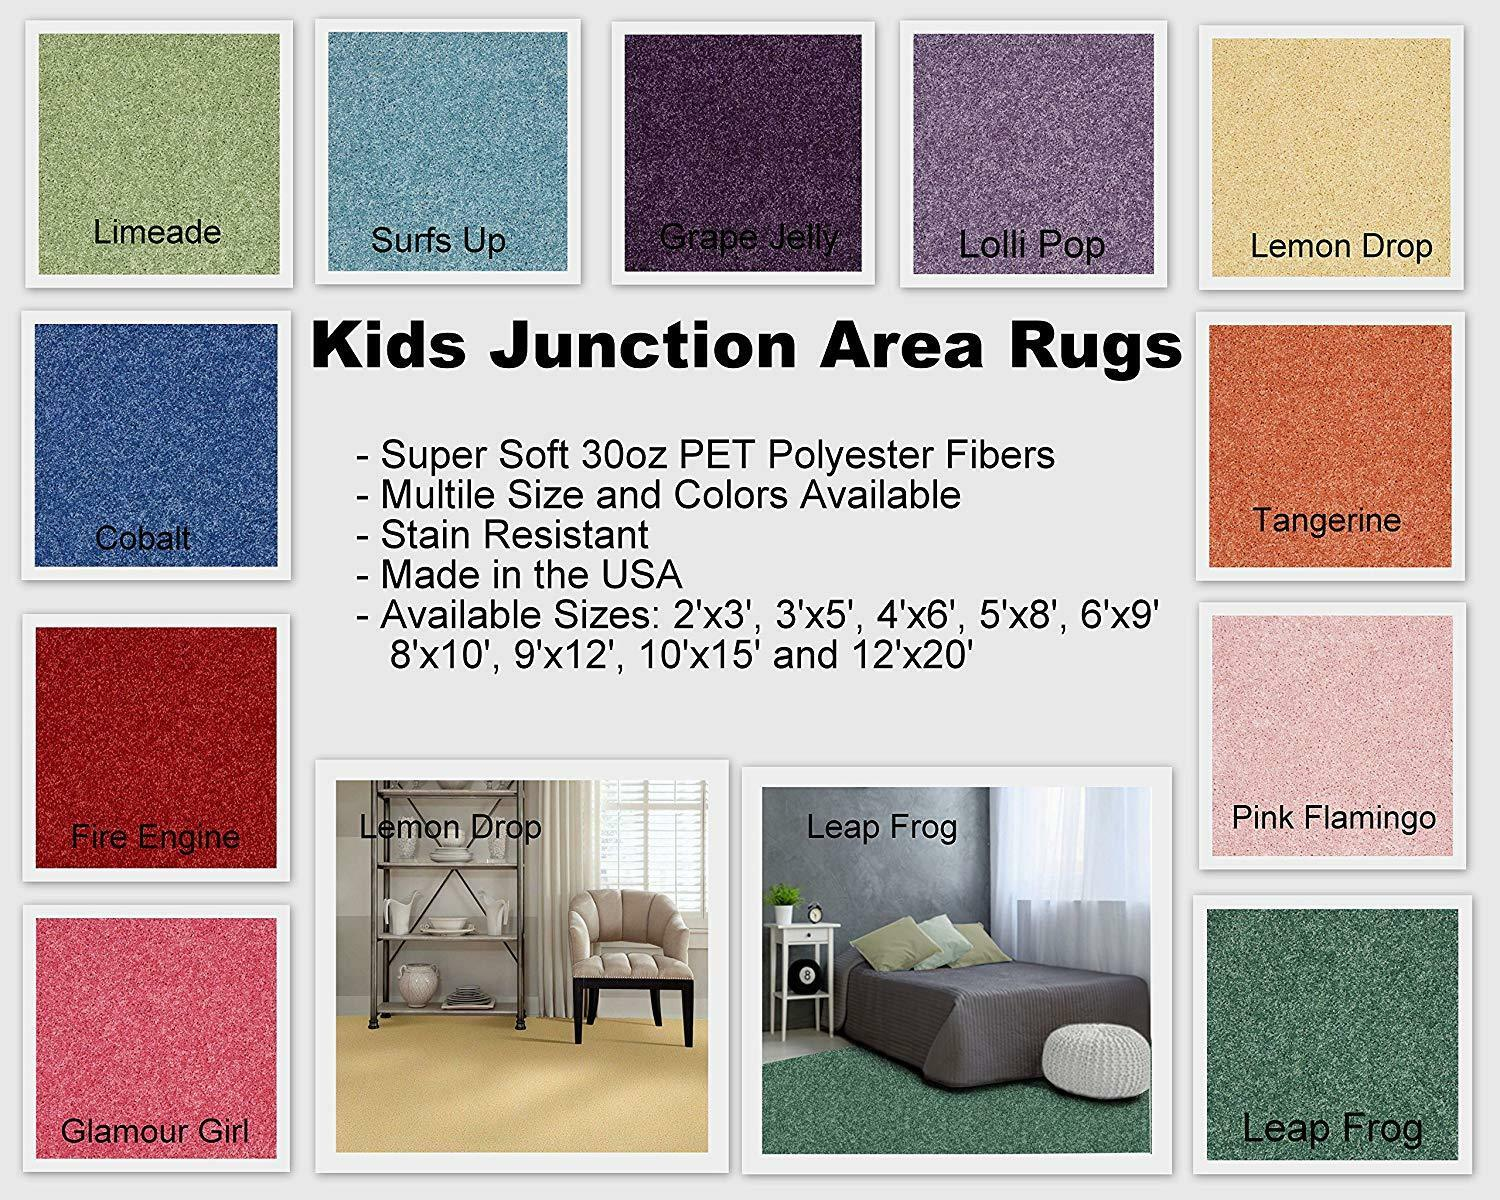 Kids Junction Area Rugs, Many Bright, Vibrant Colors to Choo